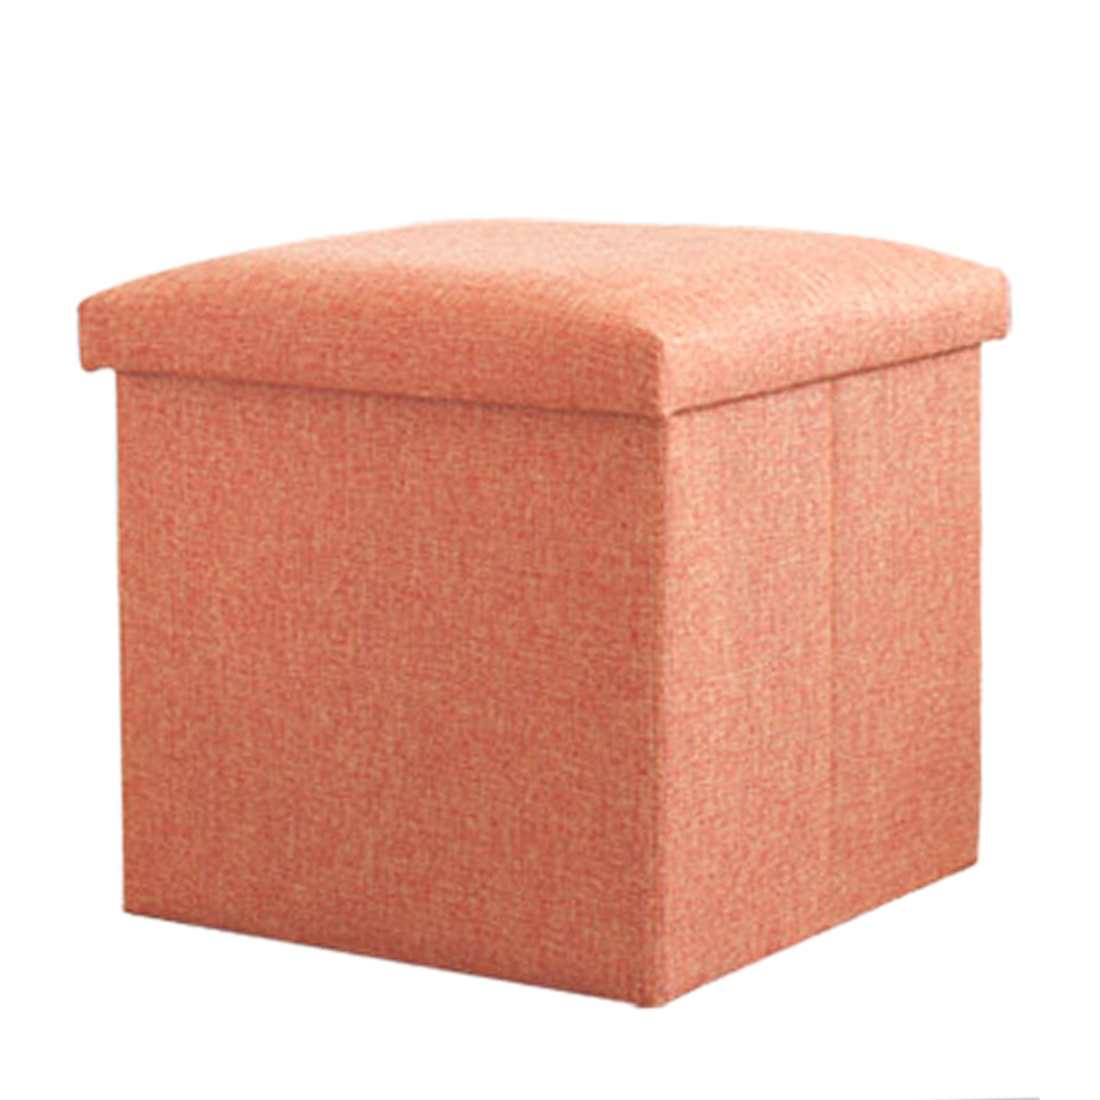 HIPSTEEN Multifonction Solid Color Square Folding Storage Box Ottoman Cube  Foot Stool Seat 30*30 - Online Get Cheap Ottoman Storage Stool -Aliexpress.com Alibaba Group